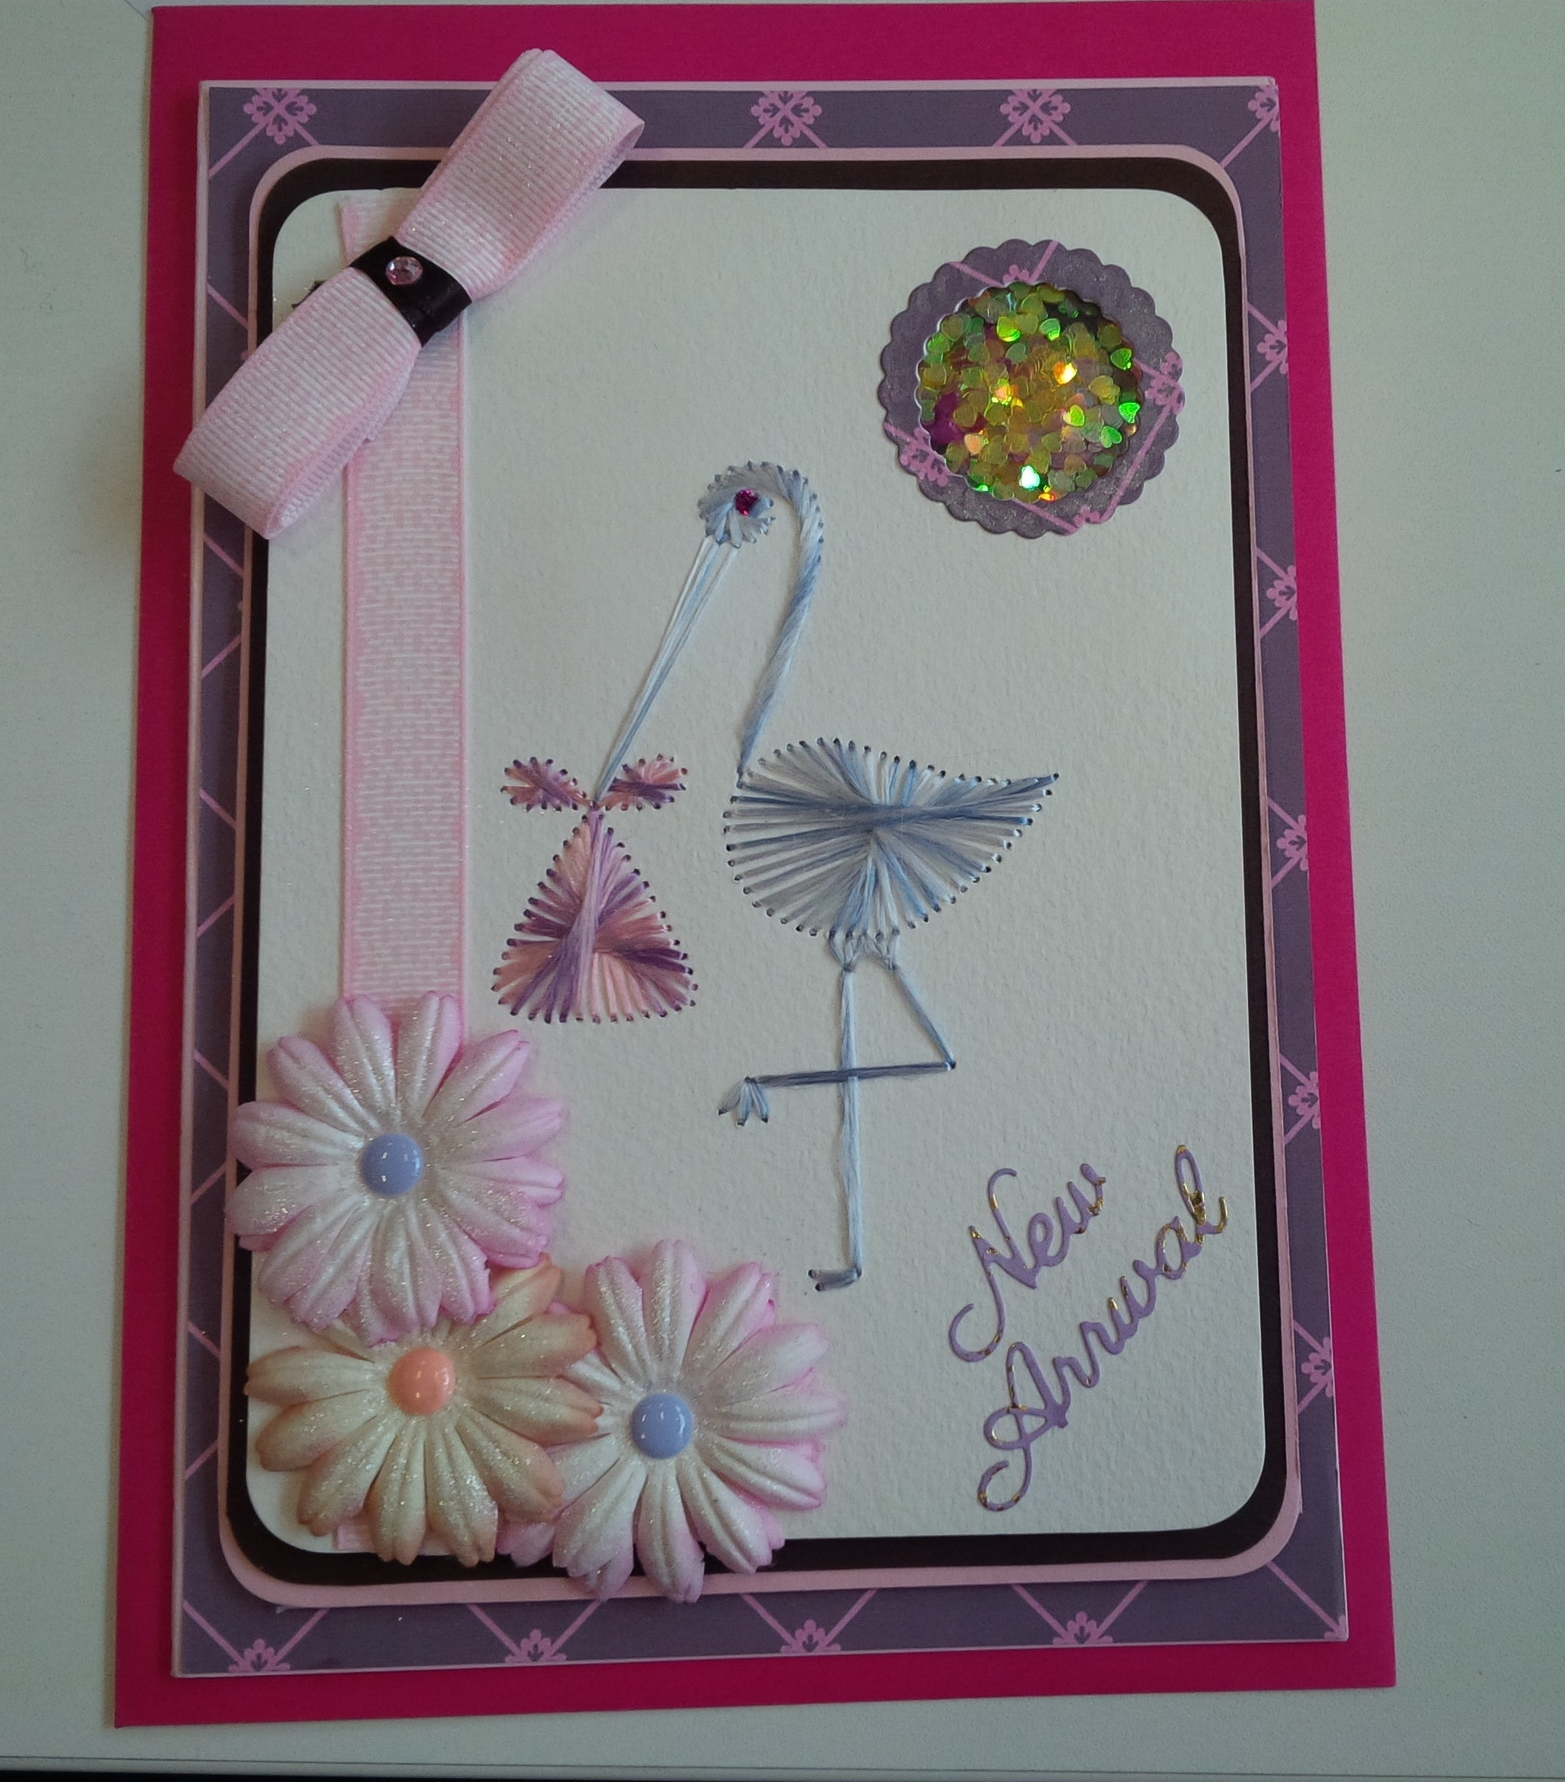 Colours used: Stork: Grey Day Bundle: Candy Mix Stitched by Jacko's Crafty Corner